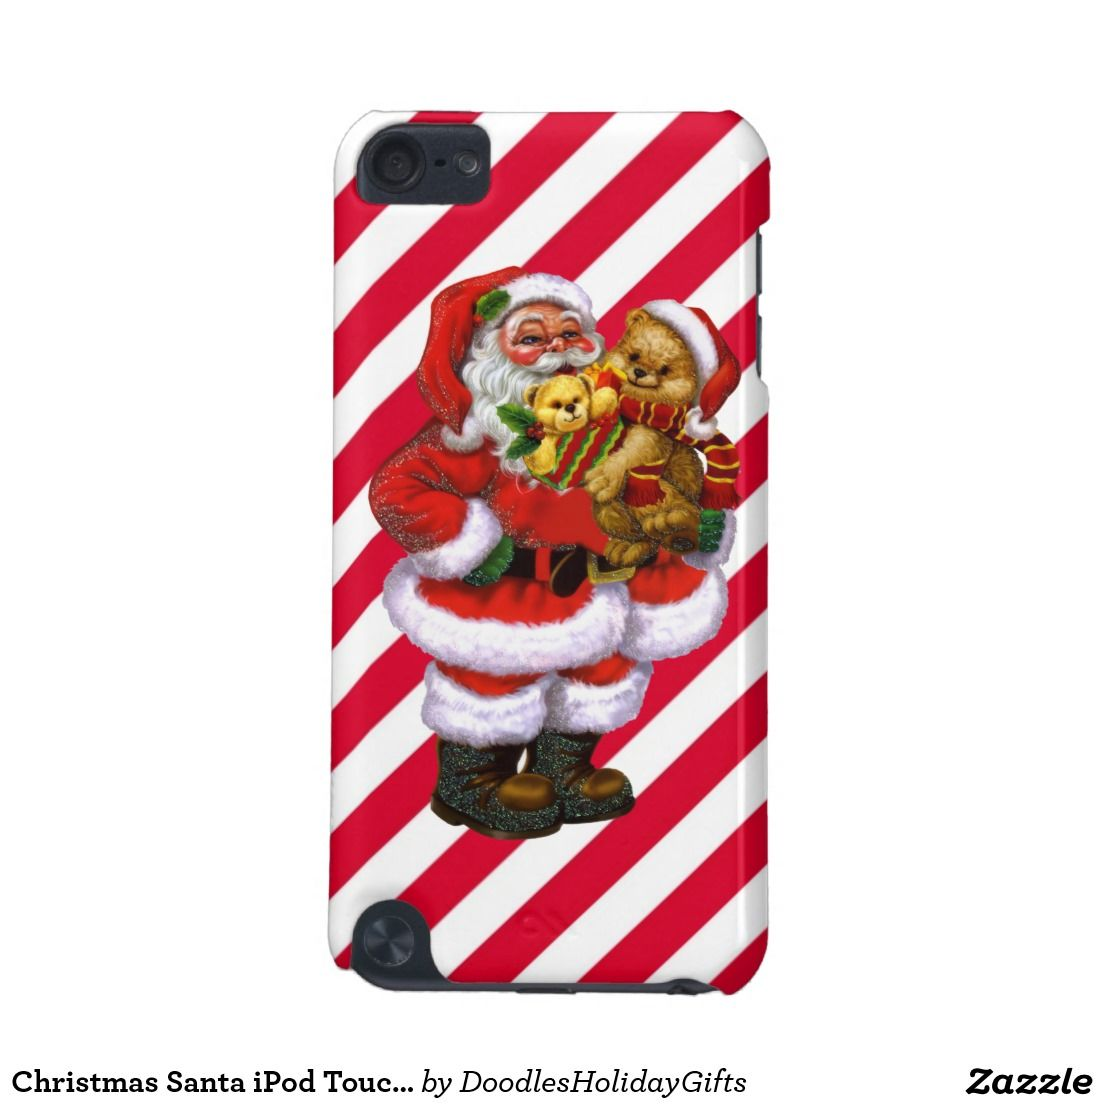 Christmas Santa iPod Touch g barely there case iPod Touch G Case